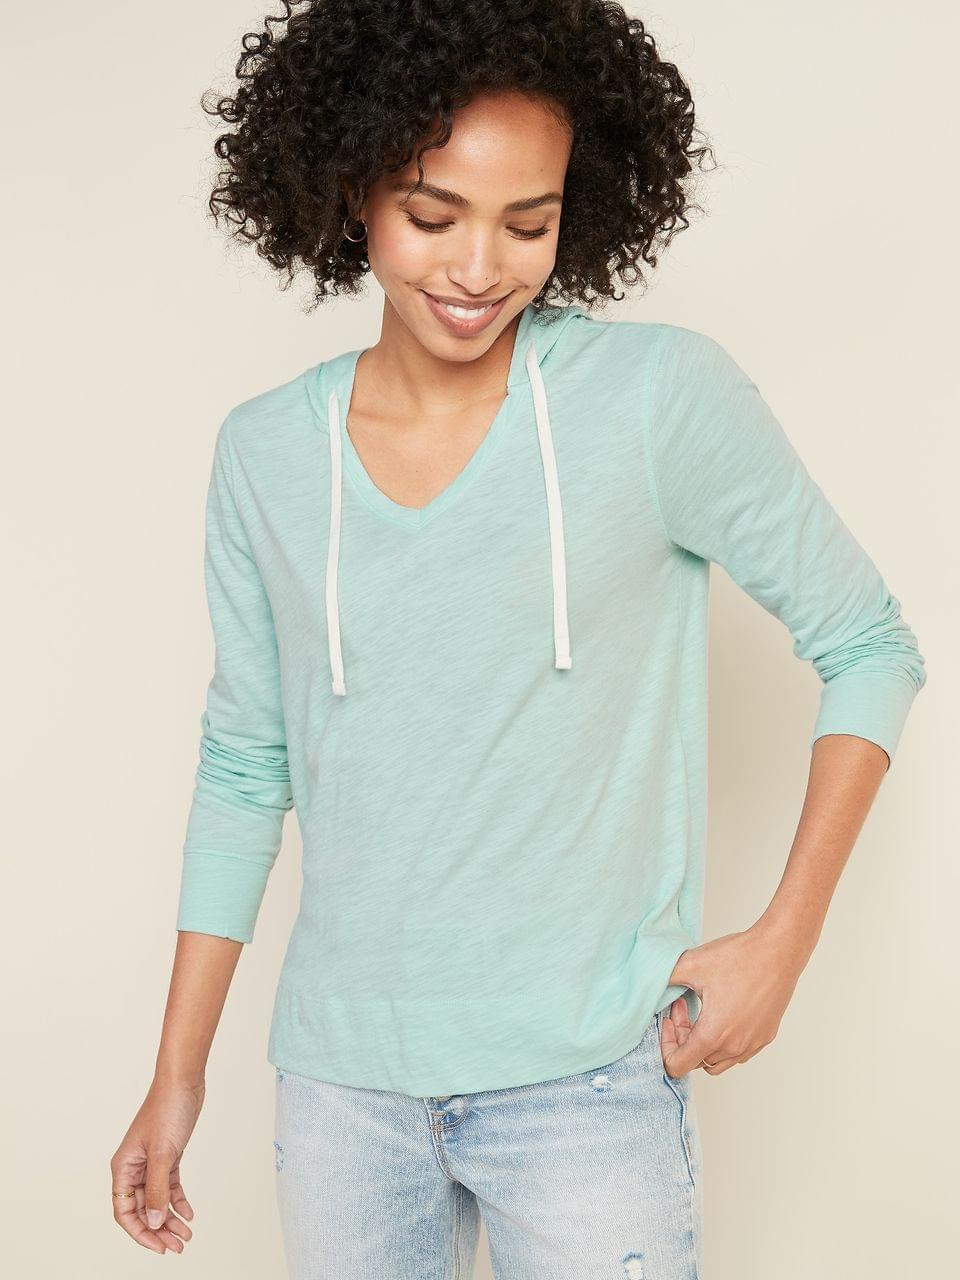 Women's Relaxed Lightweight Slub-Knit Pullover Tee Hoodie for Women